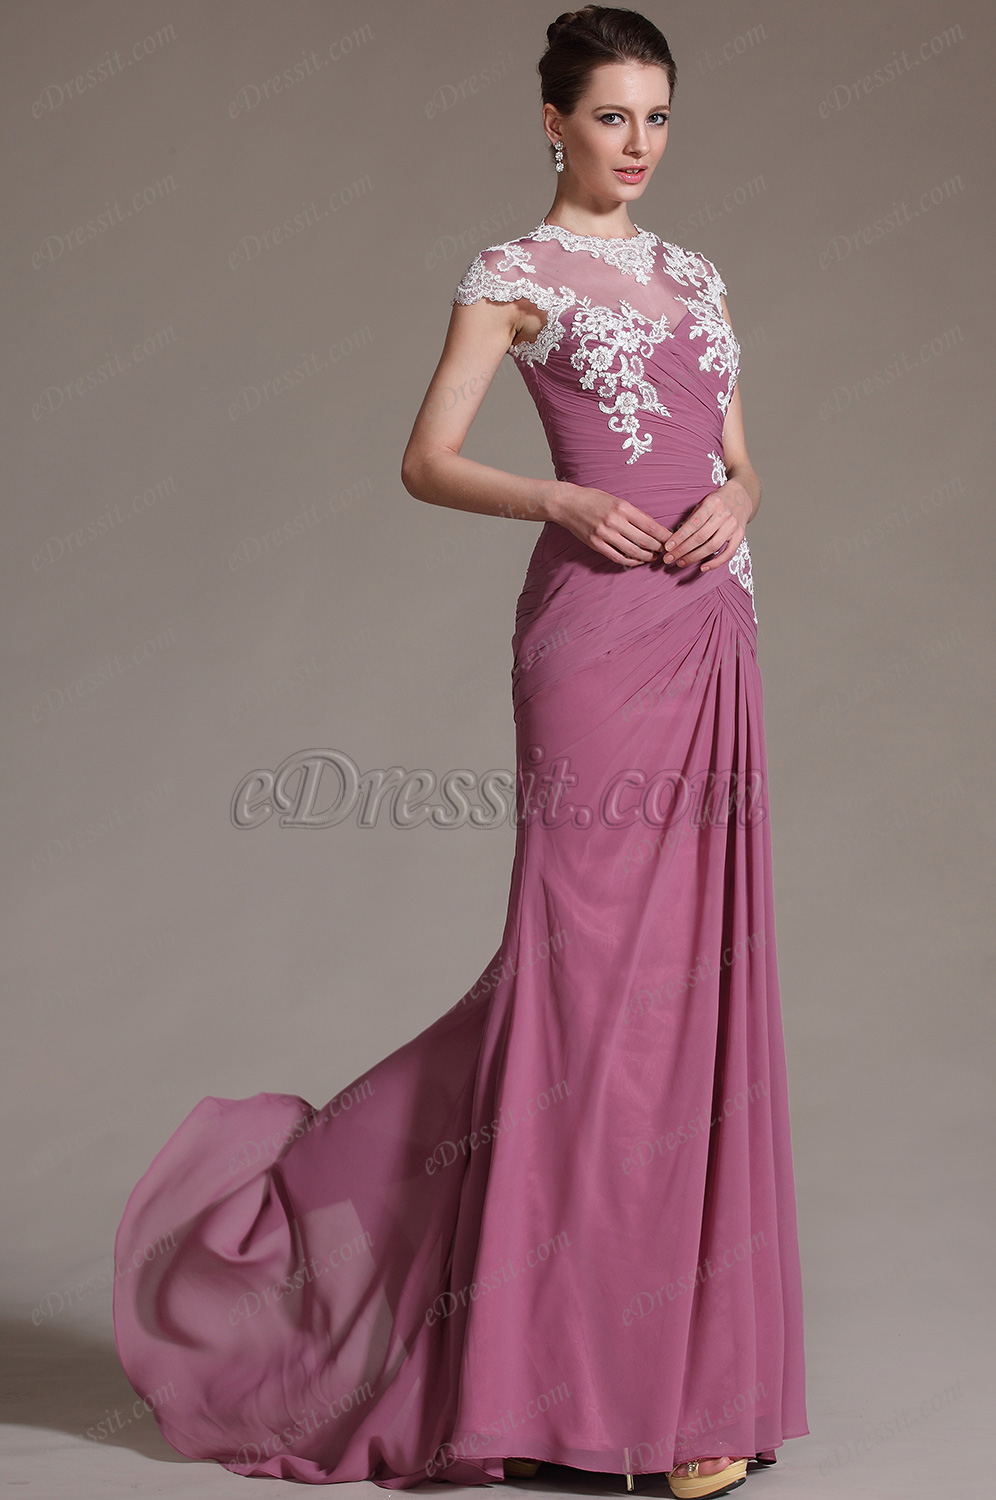 2014 New Sleeveless Lace Long Mother of the Bride Dress 26146946 Mother Of The Mother Of The Bride Dresses With Scarf